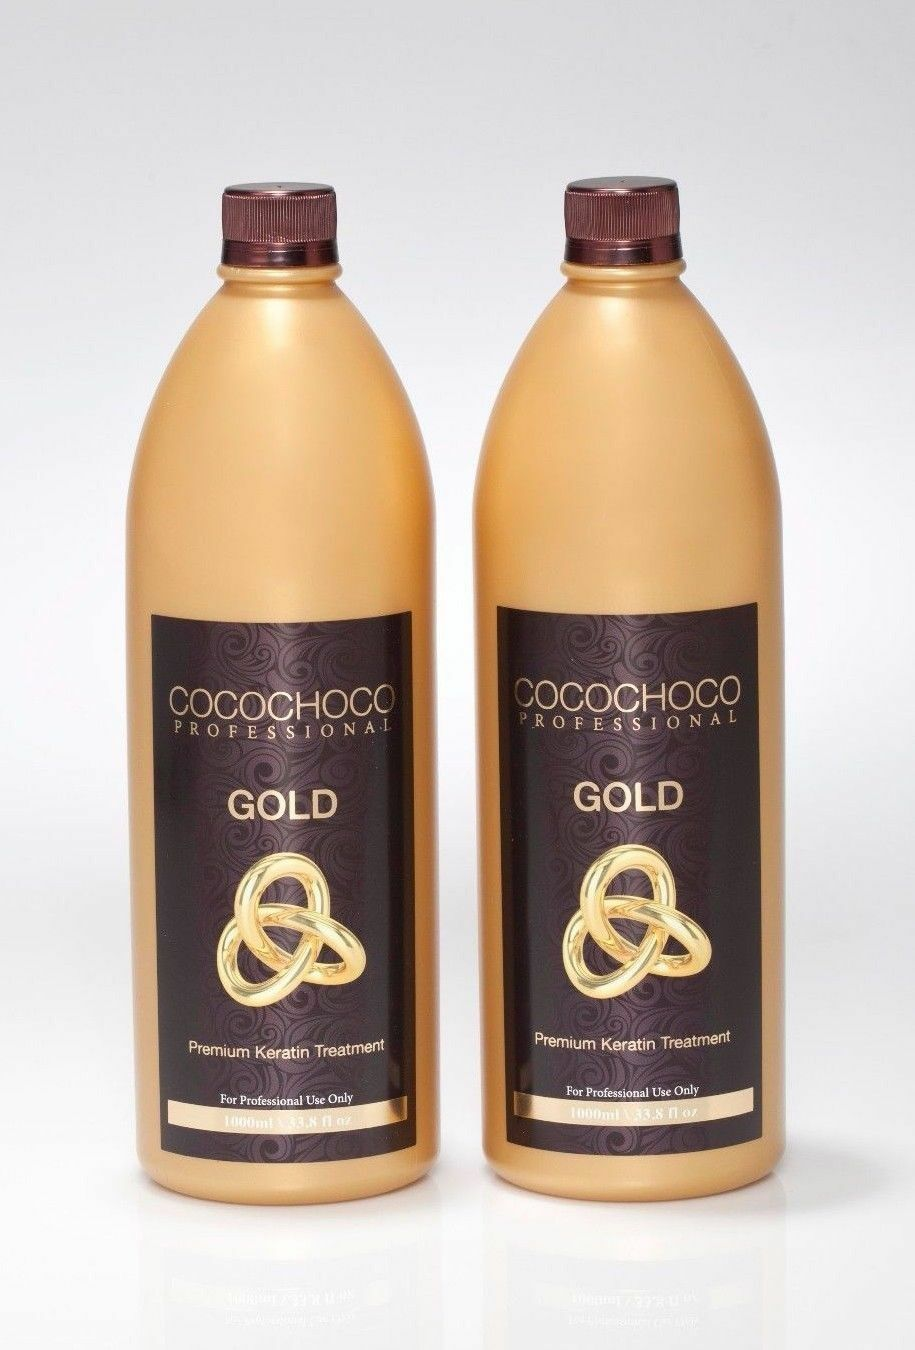 COCOCHOCO Gold 2 bottles of 1000ml each with 24k Gold New improved formula